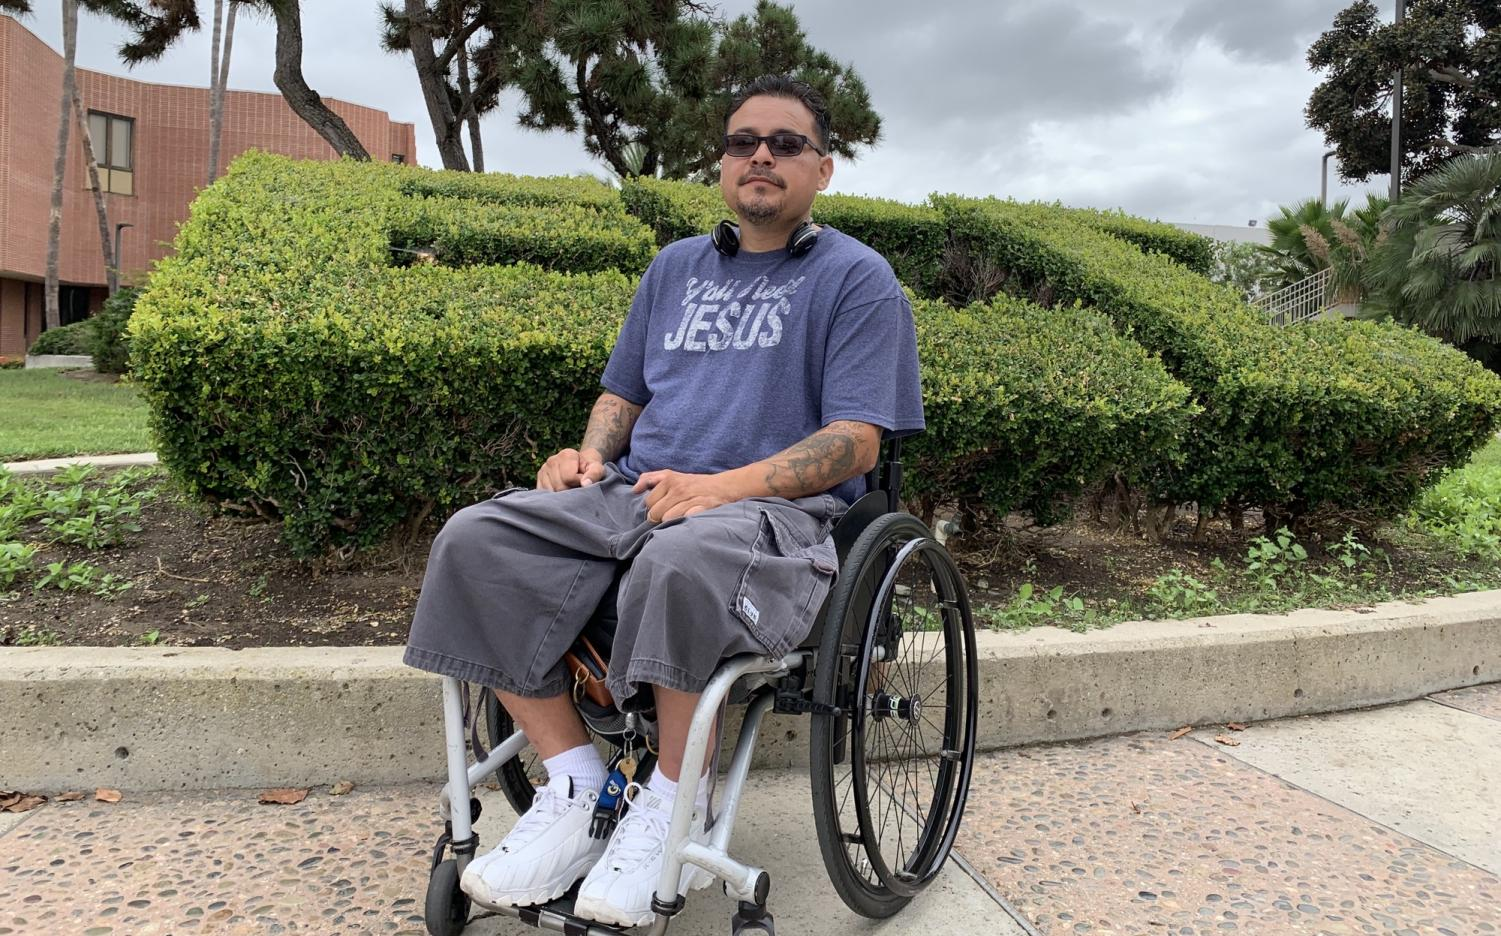 David Nieto poses for a picture outside the Bookstore at El Camino College on Thursday, Sept. 26. As a third-year student, he has maintained a 4.0 G.P.A while experiencing food and housing insecurities that have forced him to live in his car for a few months last year.